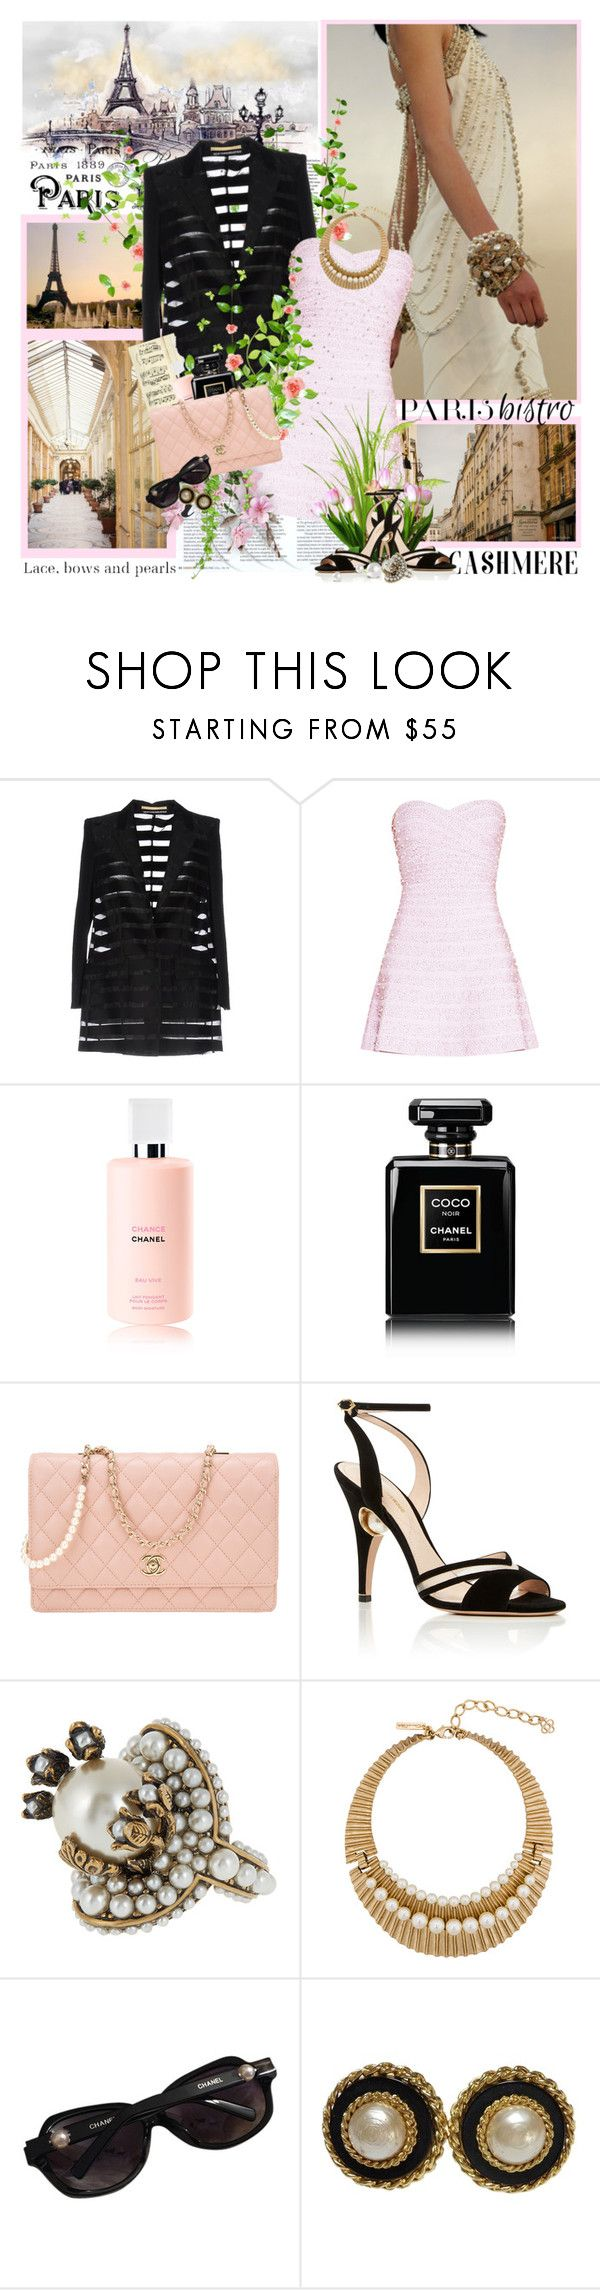 """"""",,April in Paris, chestnuts in blossom, holiday tables under the trees...."""""""" by purplecherryblossom ❤ liked on Polyvore featuring Chanel, New York Industrie, Hervé Léger, Nicholas Kirkwood, Gucci and Oscar de la Renta"""